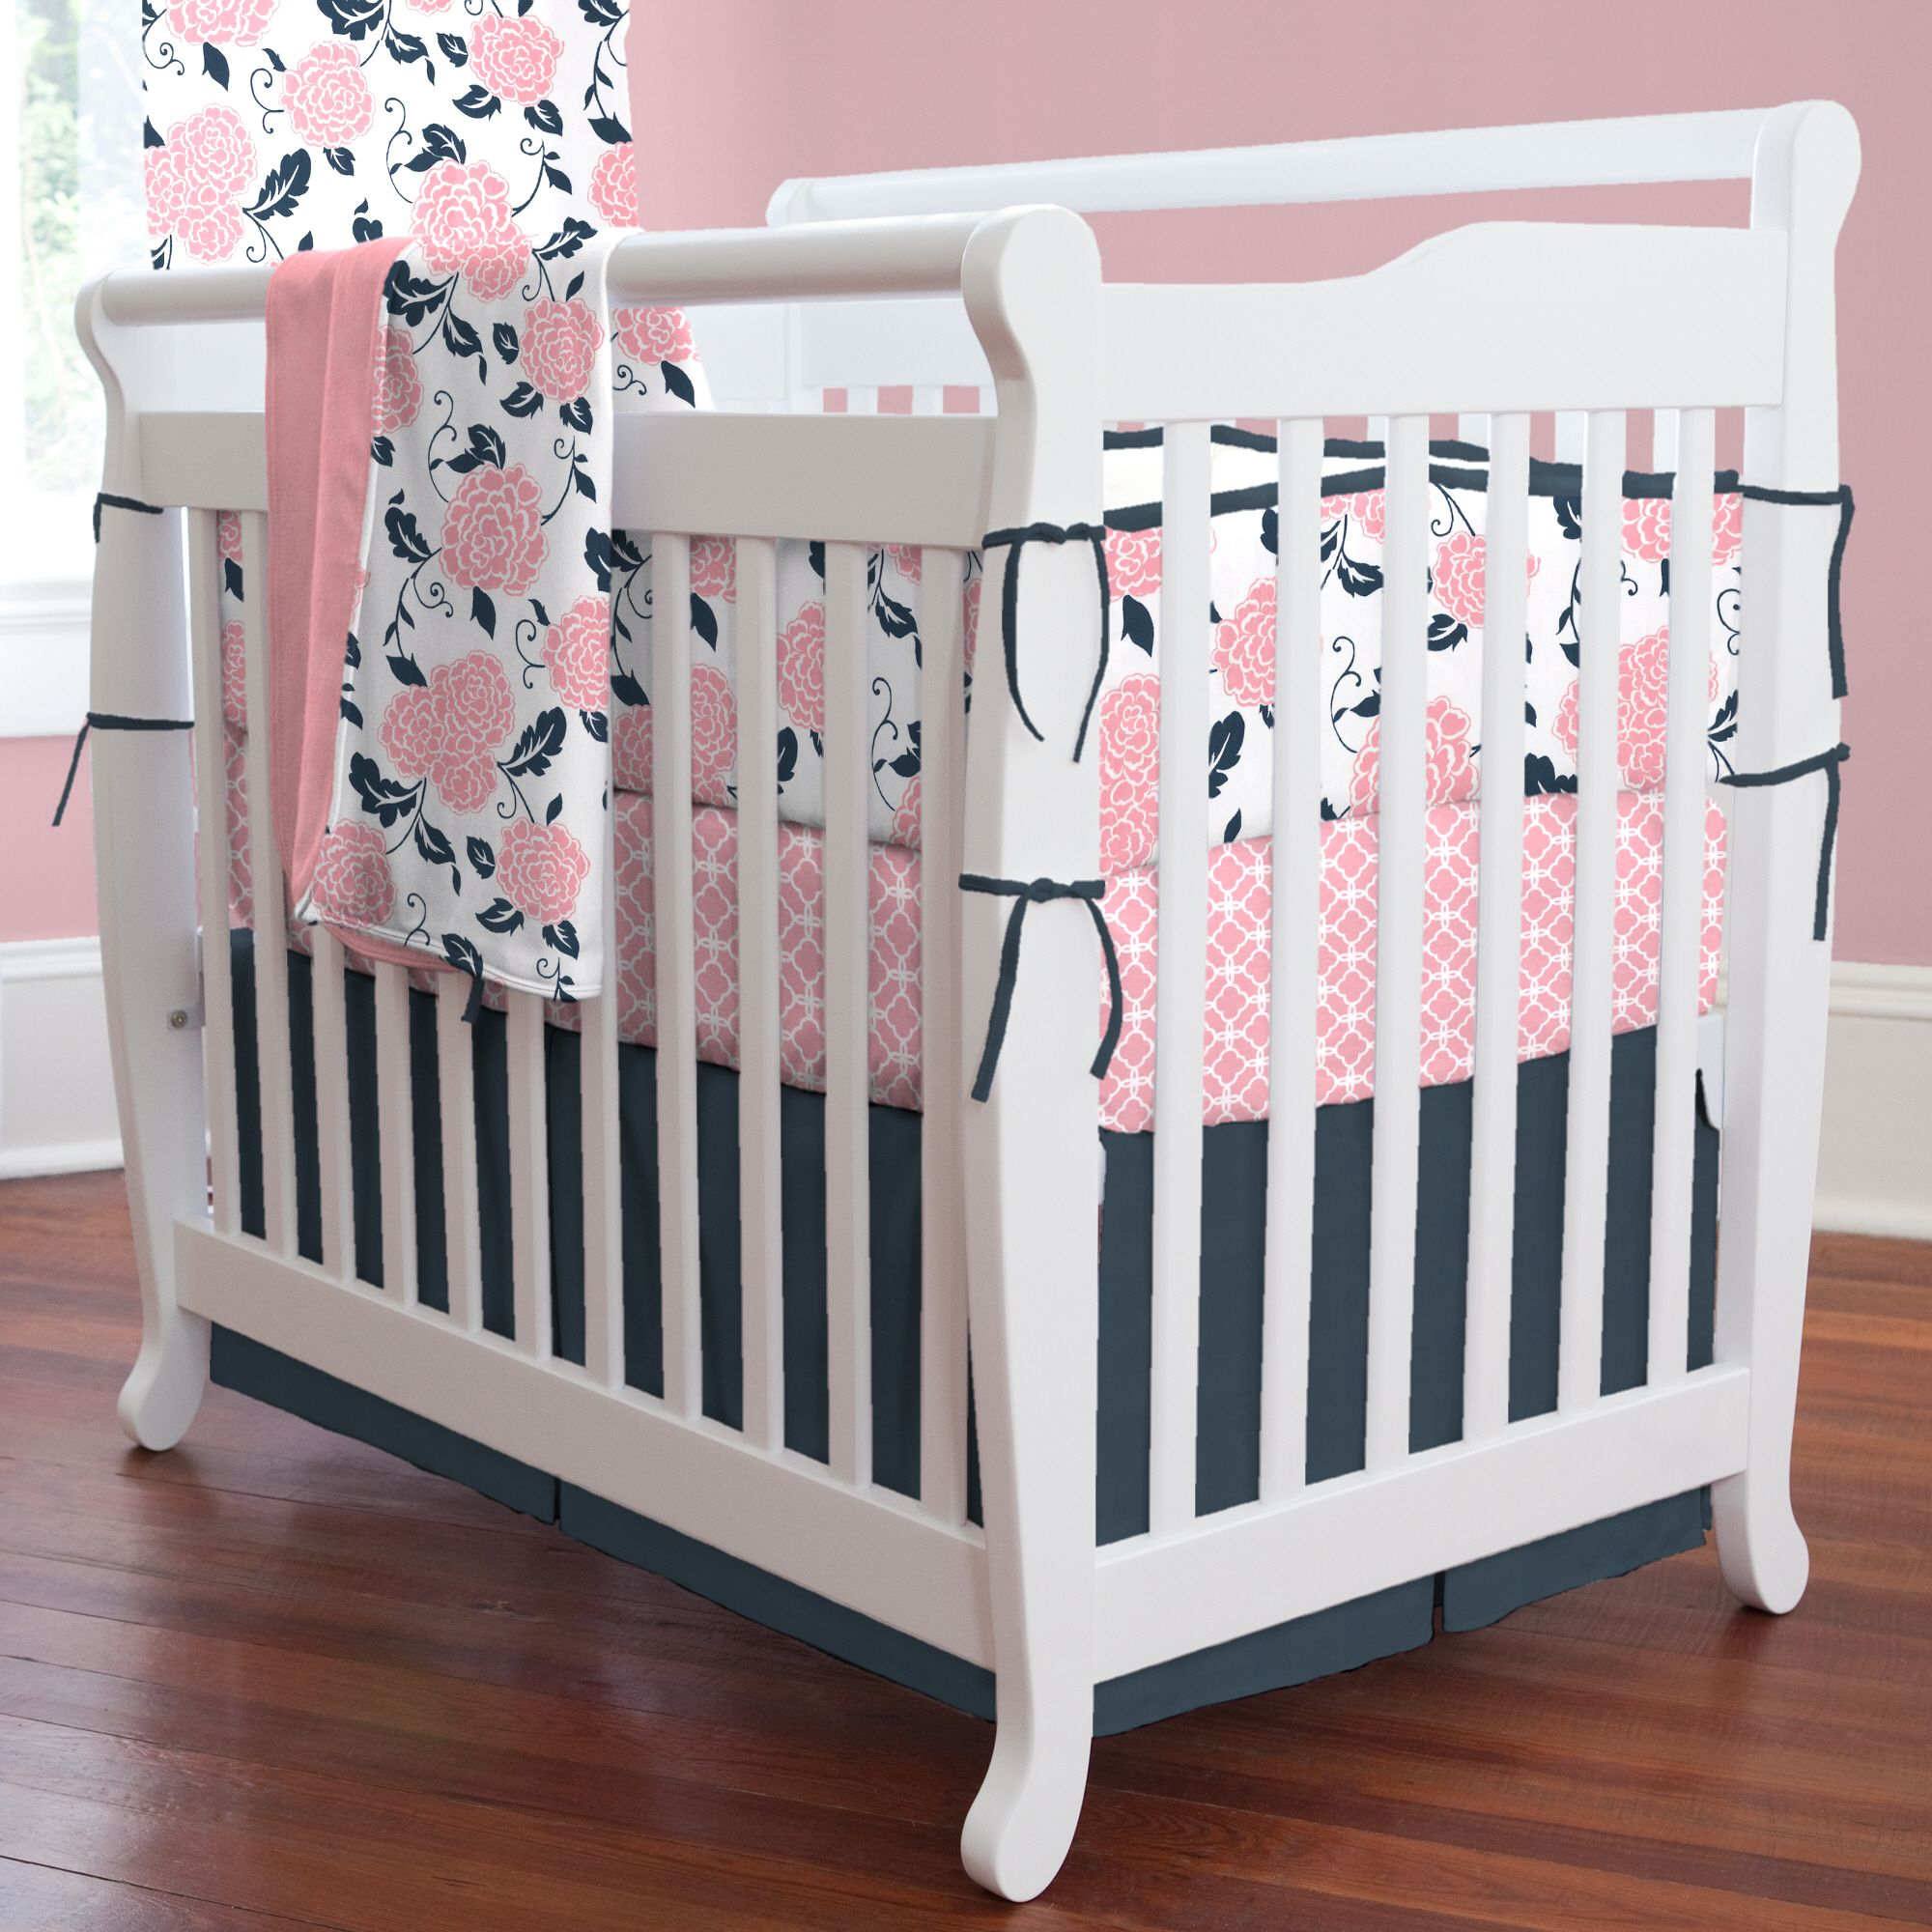 Navy blue bedding for girls - Coral And Navy Floral Mini Crib Bedding Carouseldesigns